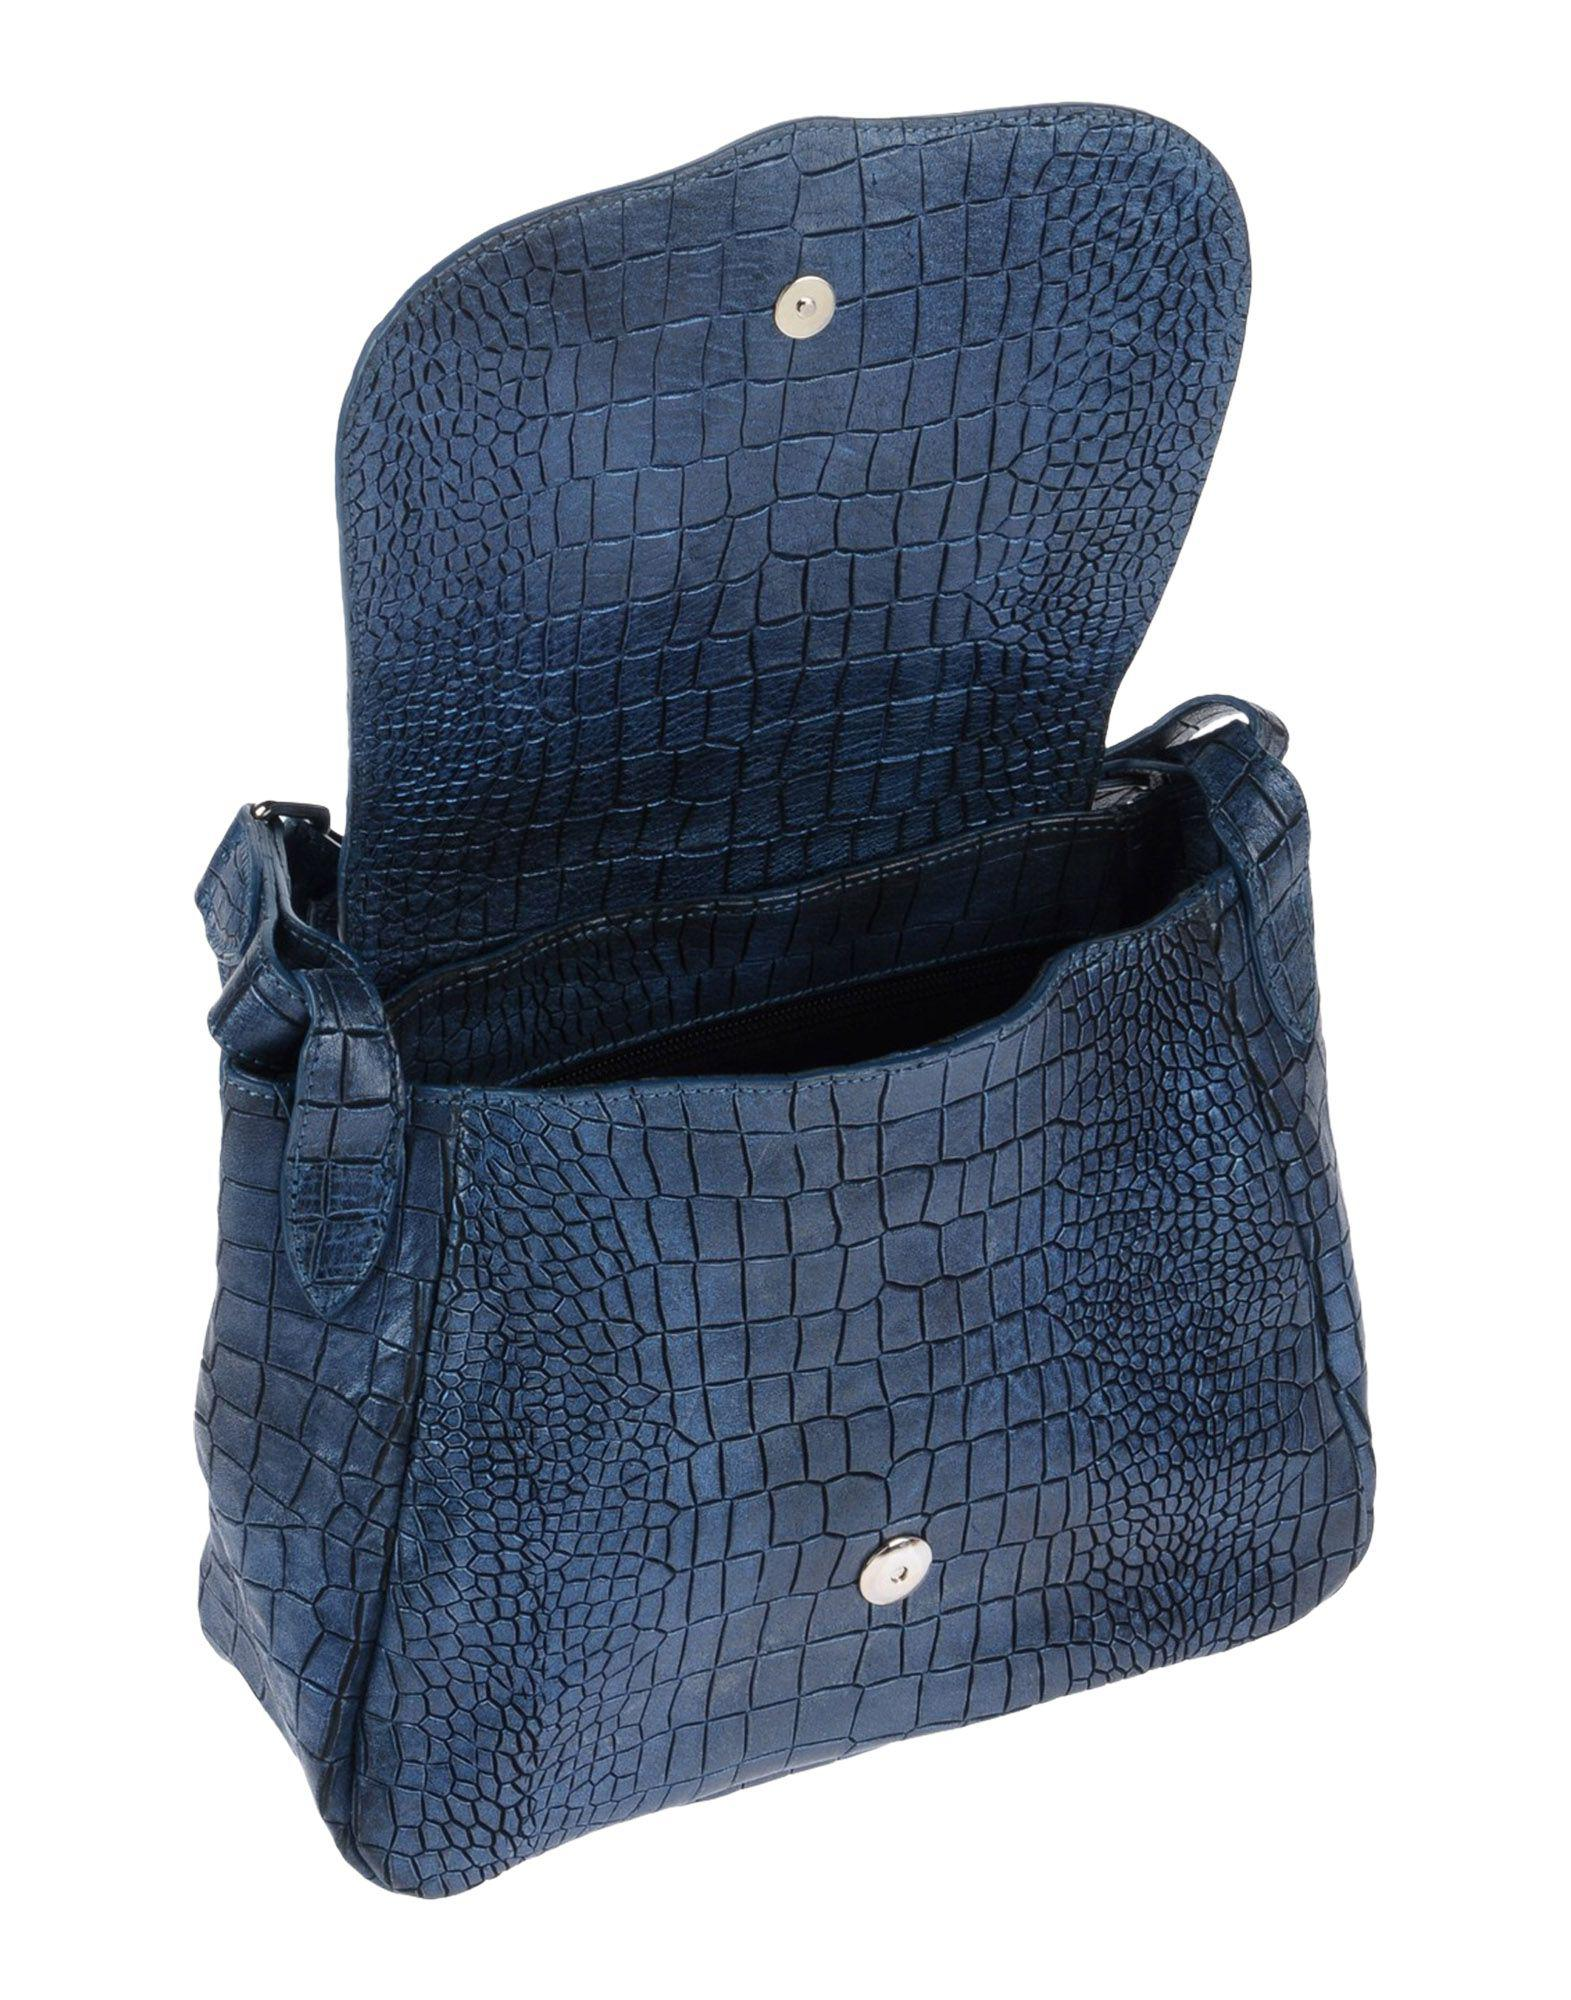 Orciani Leather Cross-body Bag in Blue